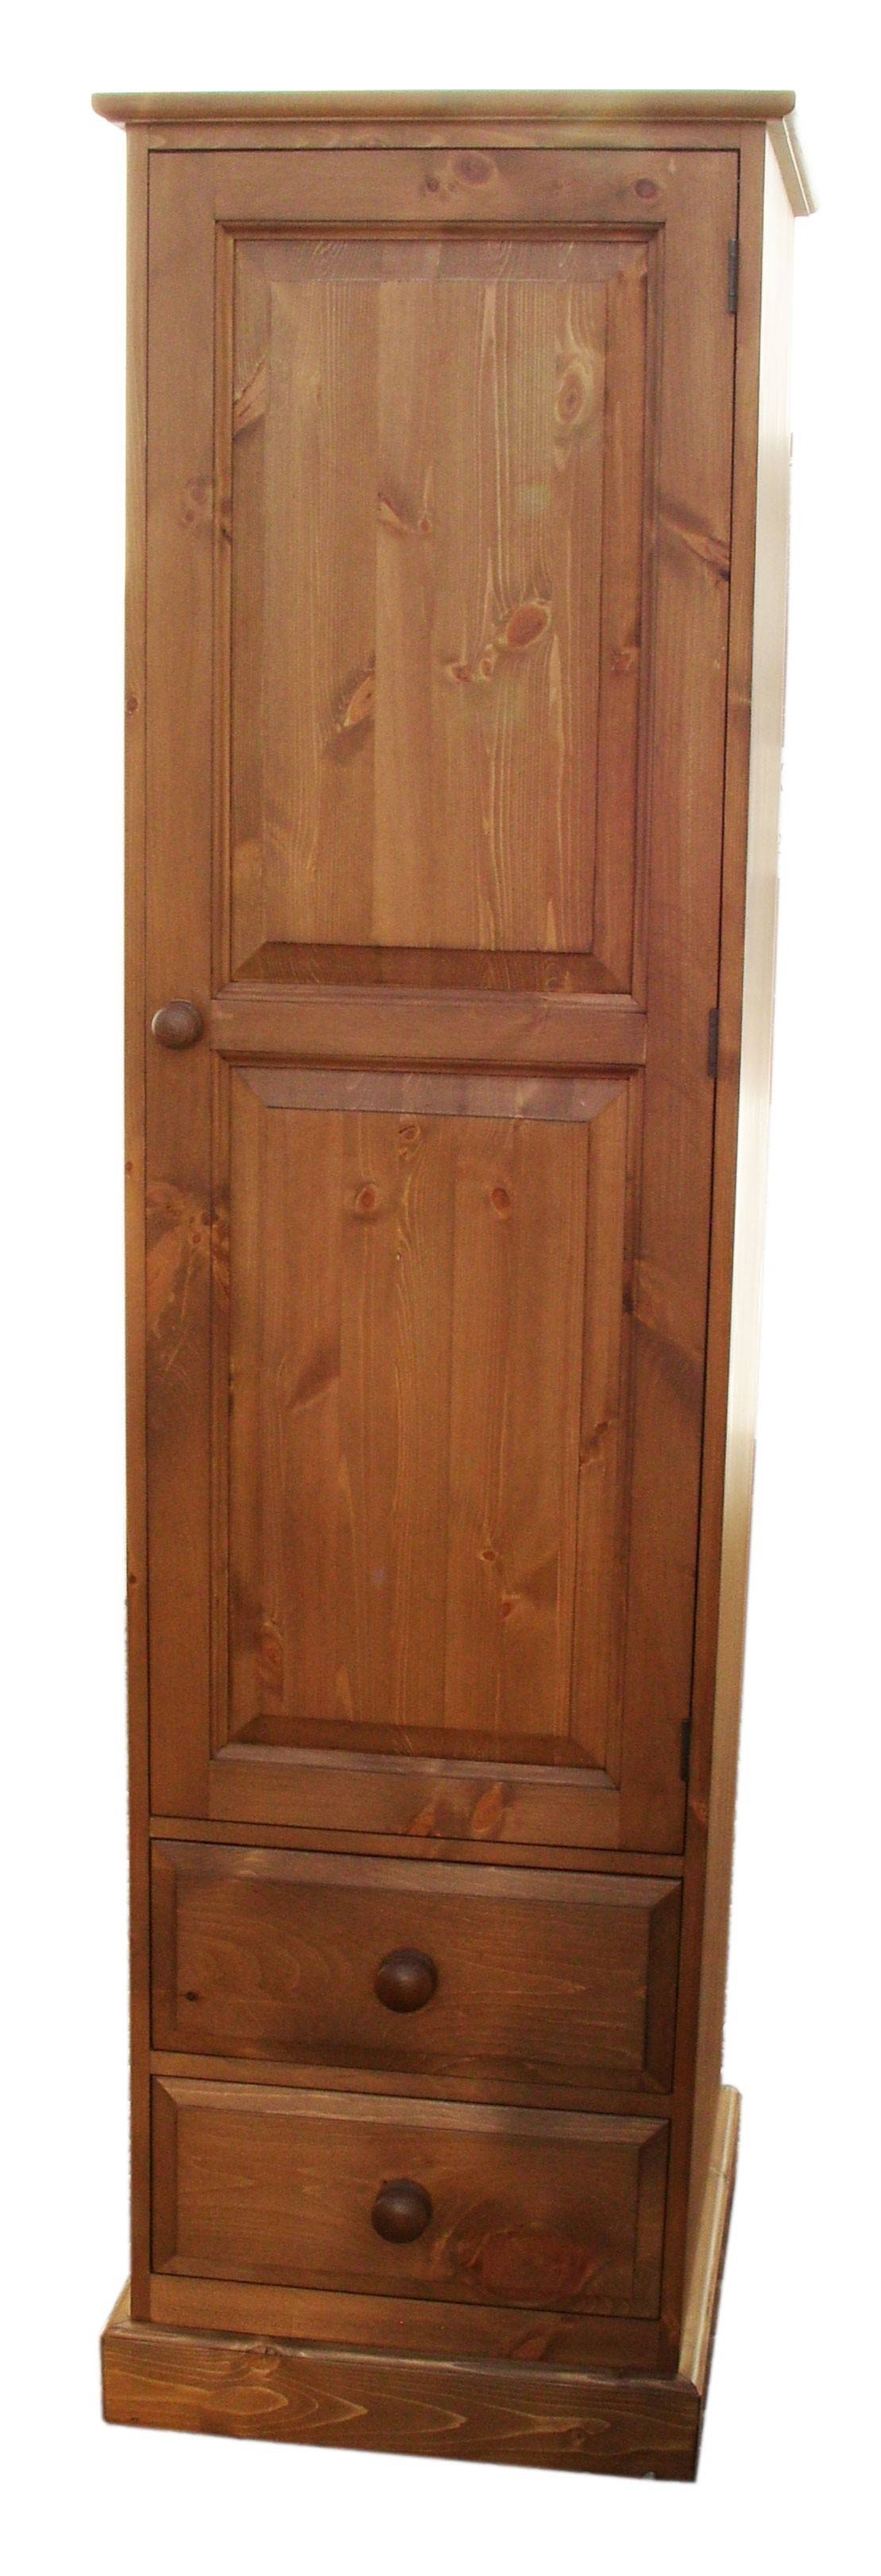 Cheshire Single Door 2 Drawer Wardrobe intended for Single Door Pine Wardrobes (Image 4 of 15)